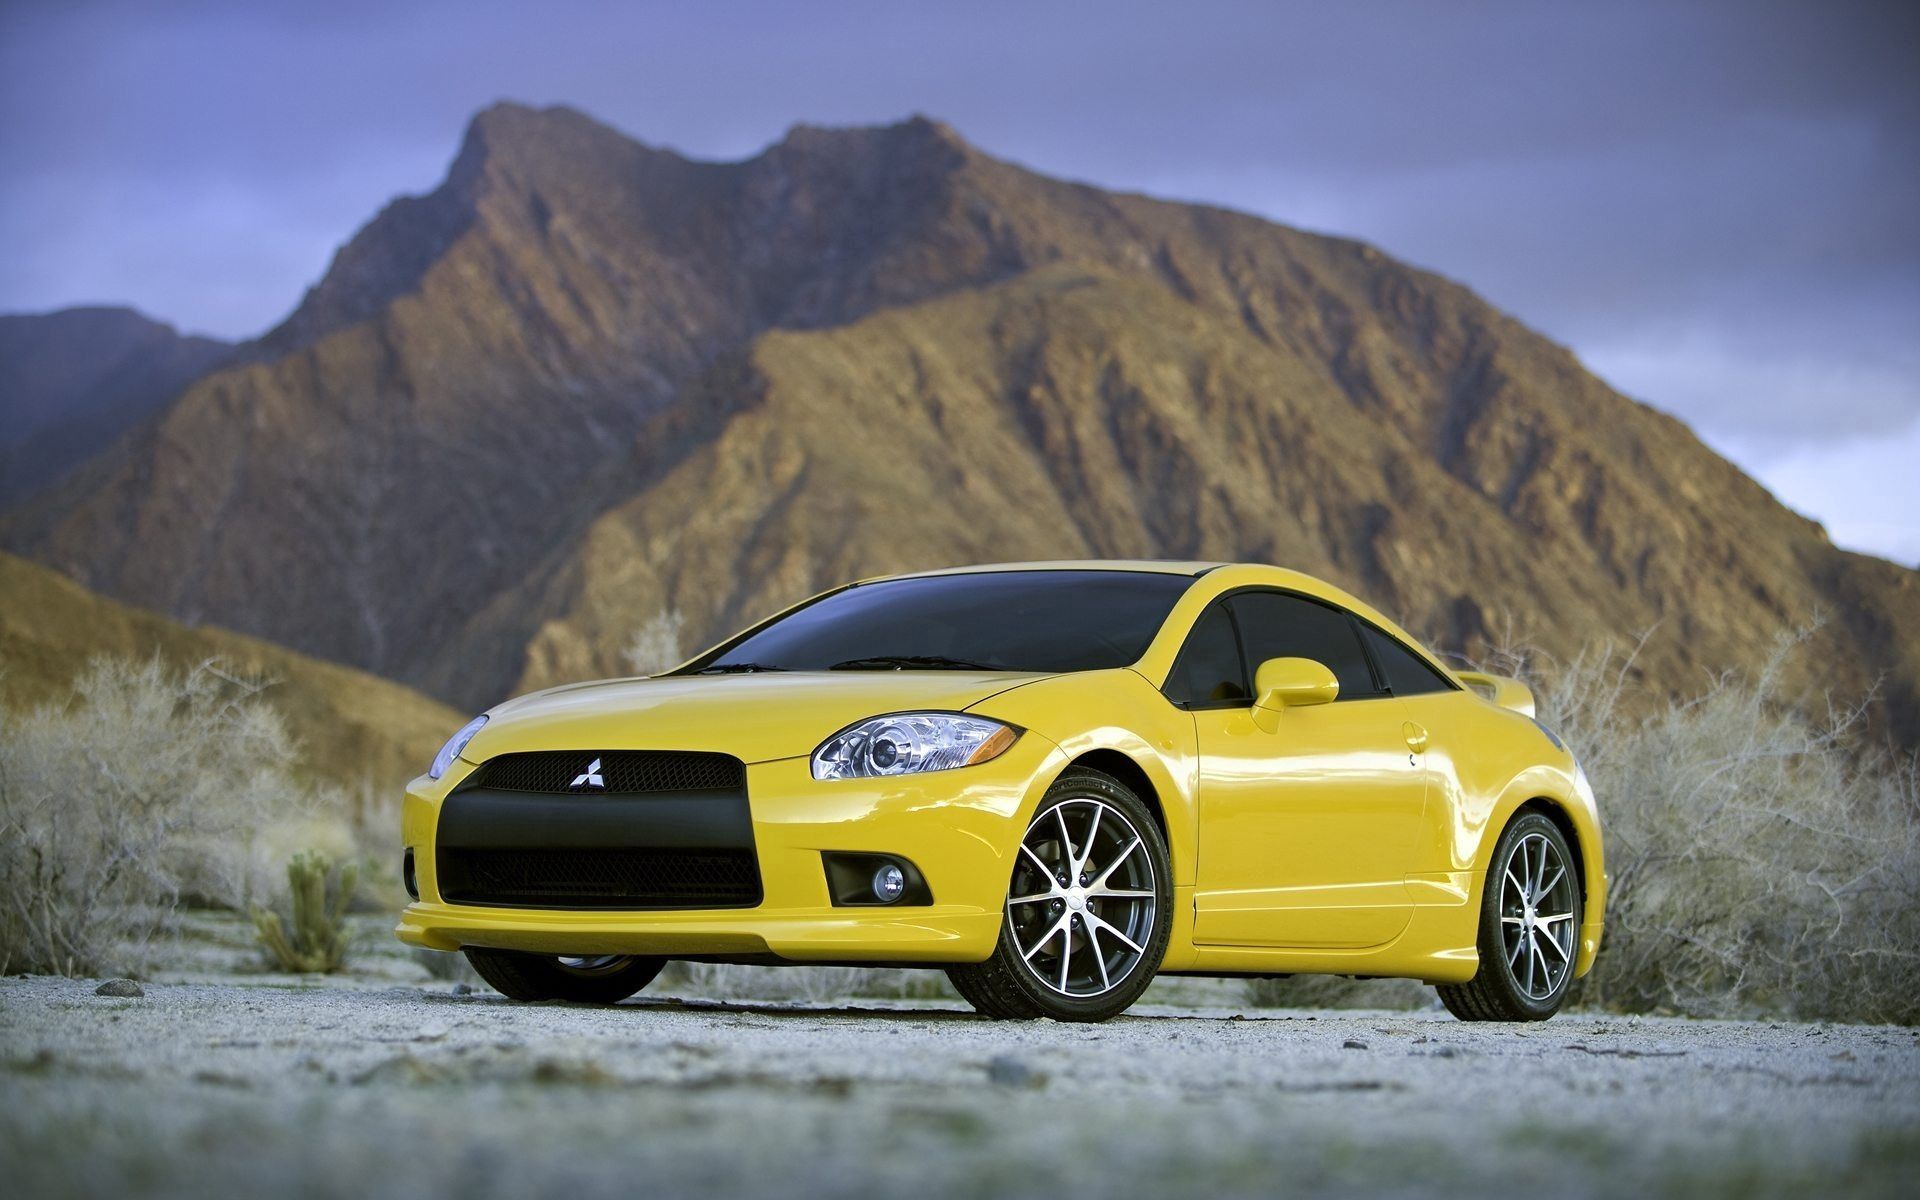 104911 download wallpaper Cars, Auto, Mitsubishi, Front View screensavers and pictures for free